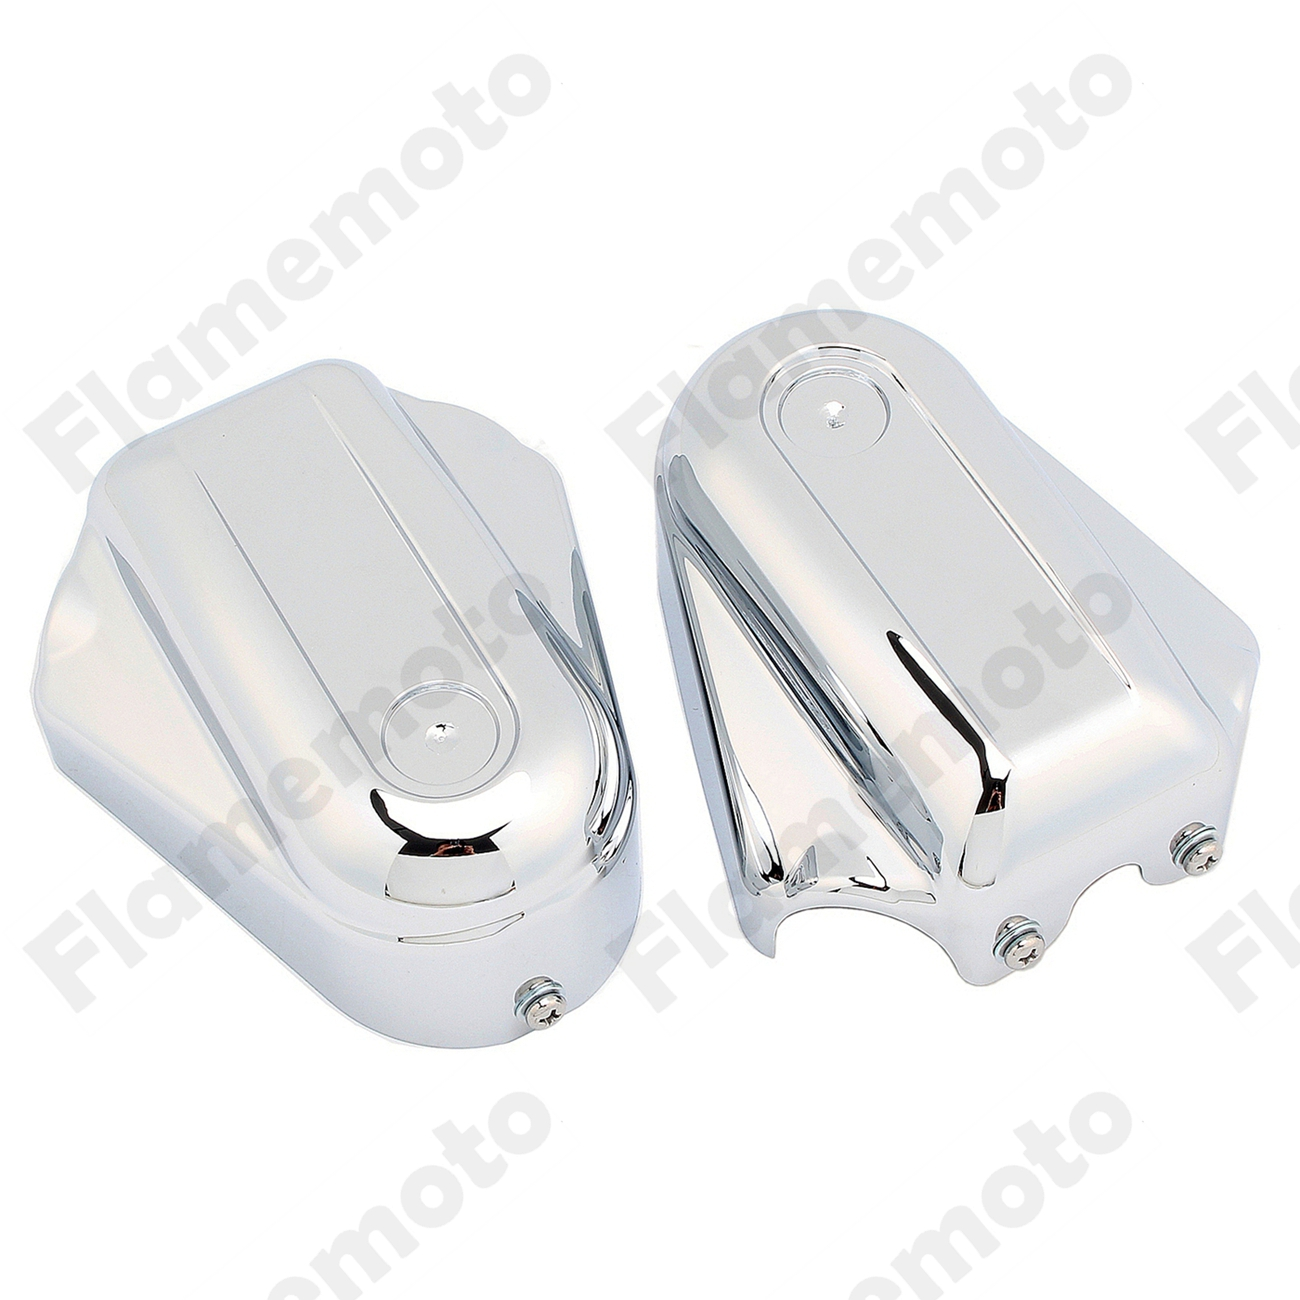 Chrome Motorcycle Bar Shield Rear Axle Covers Swingarm Cap For For Harley Softail Deluxe FLSTN FXSTB 2008 2009 2010 2011-2017 car rear trunk security shield cargo cover for jeep compass 2007 2008 2009 2010 2011 high qualit auto accessories